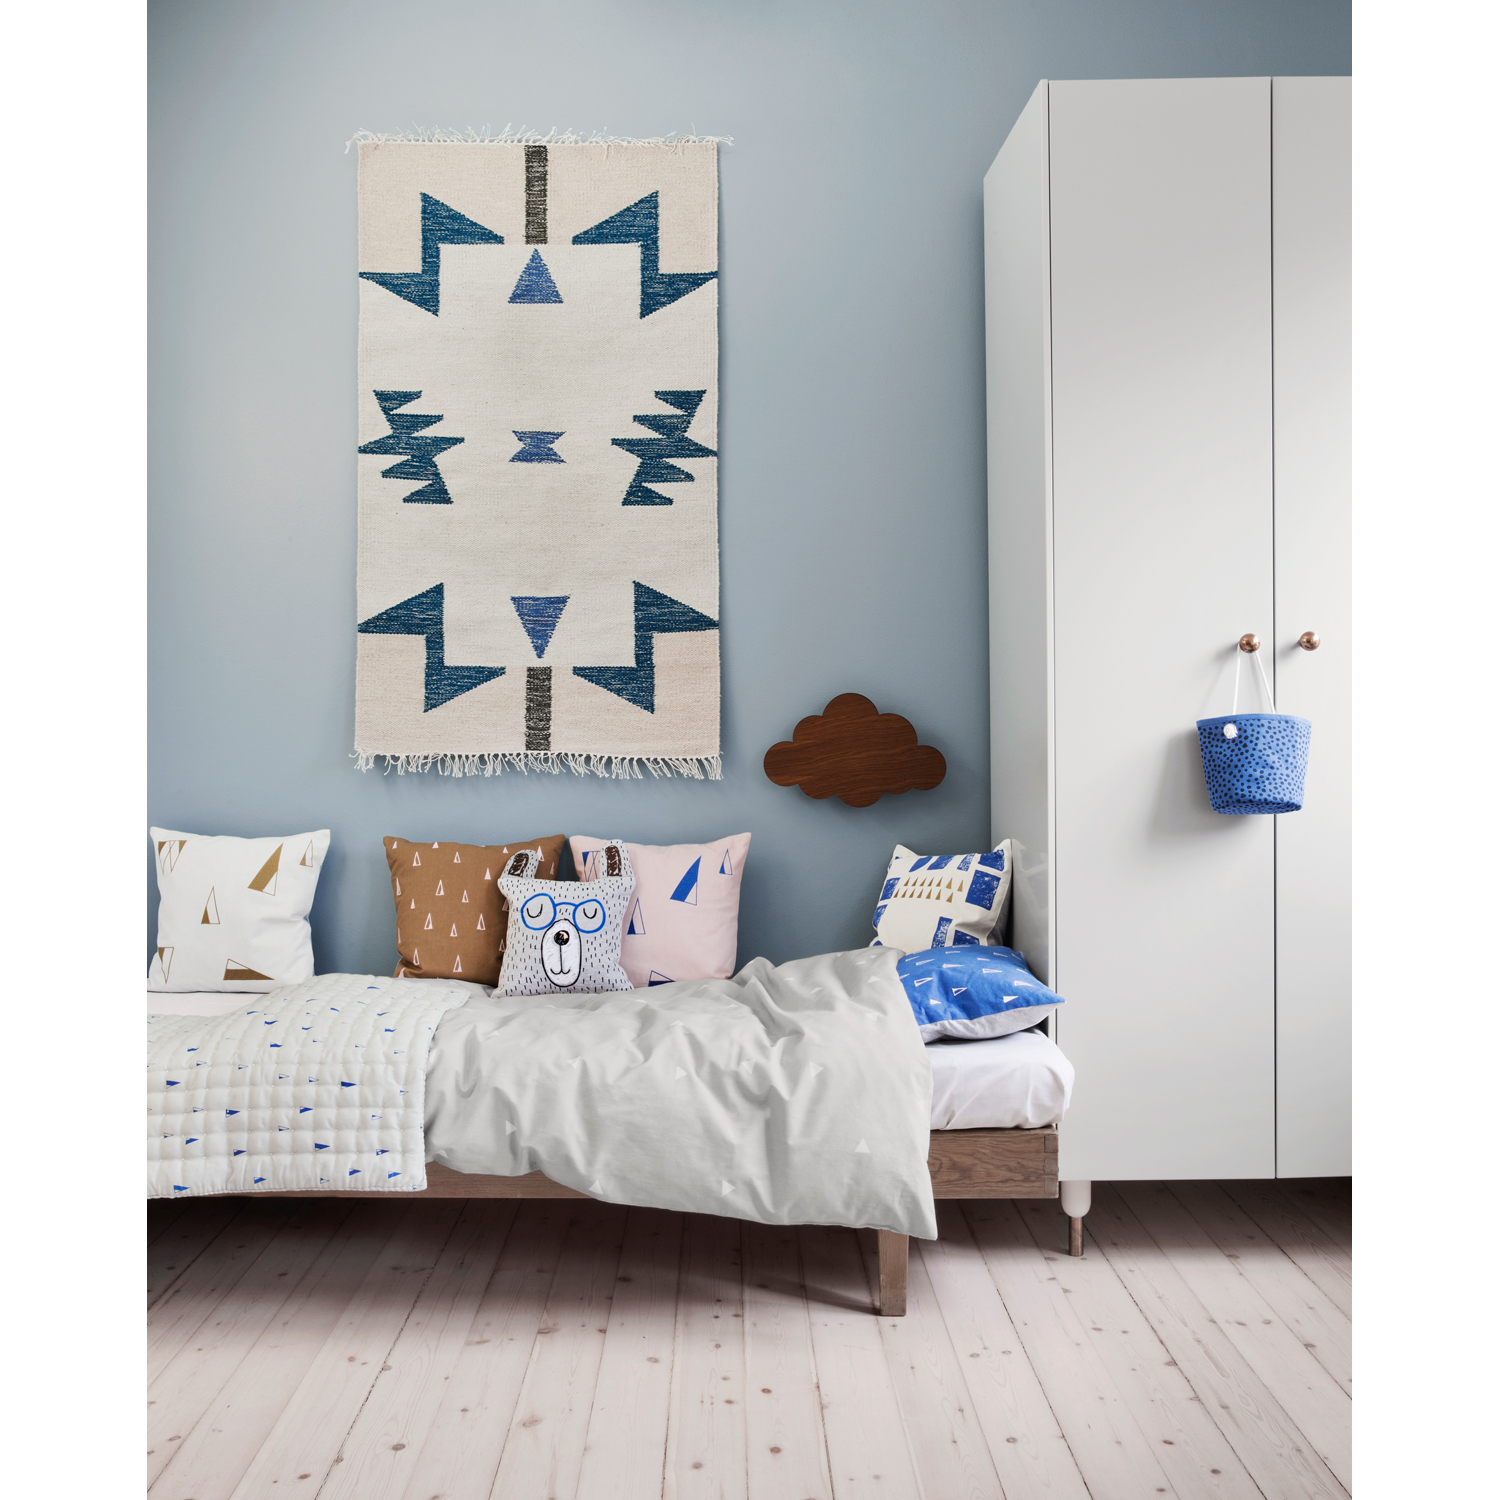 Kelim matta, blue triangles Рferm living Рk̦p online p̴ rum21.se